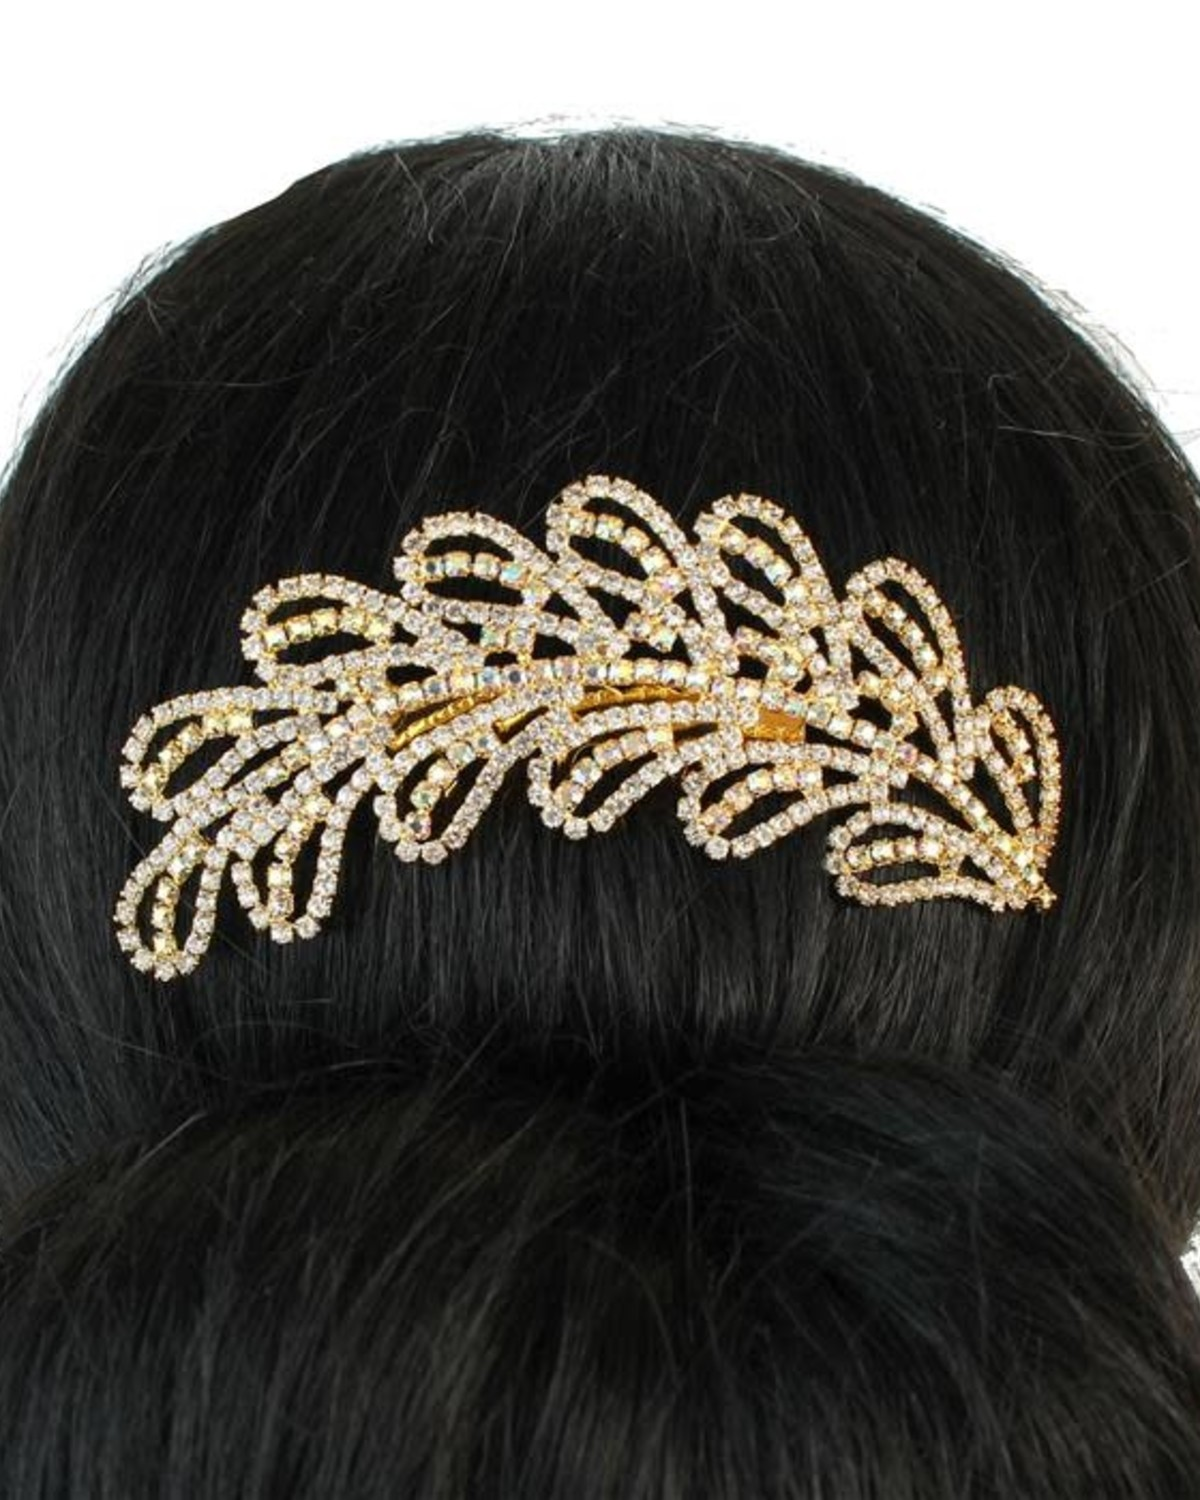 Branches of Bling Hair Comb